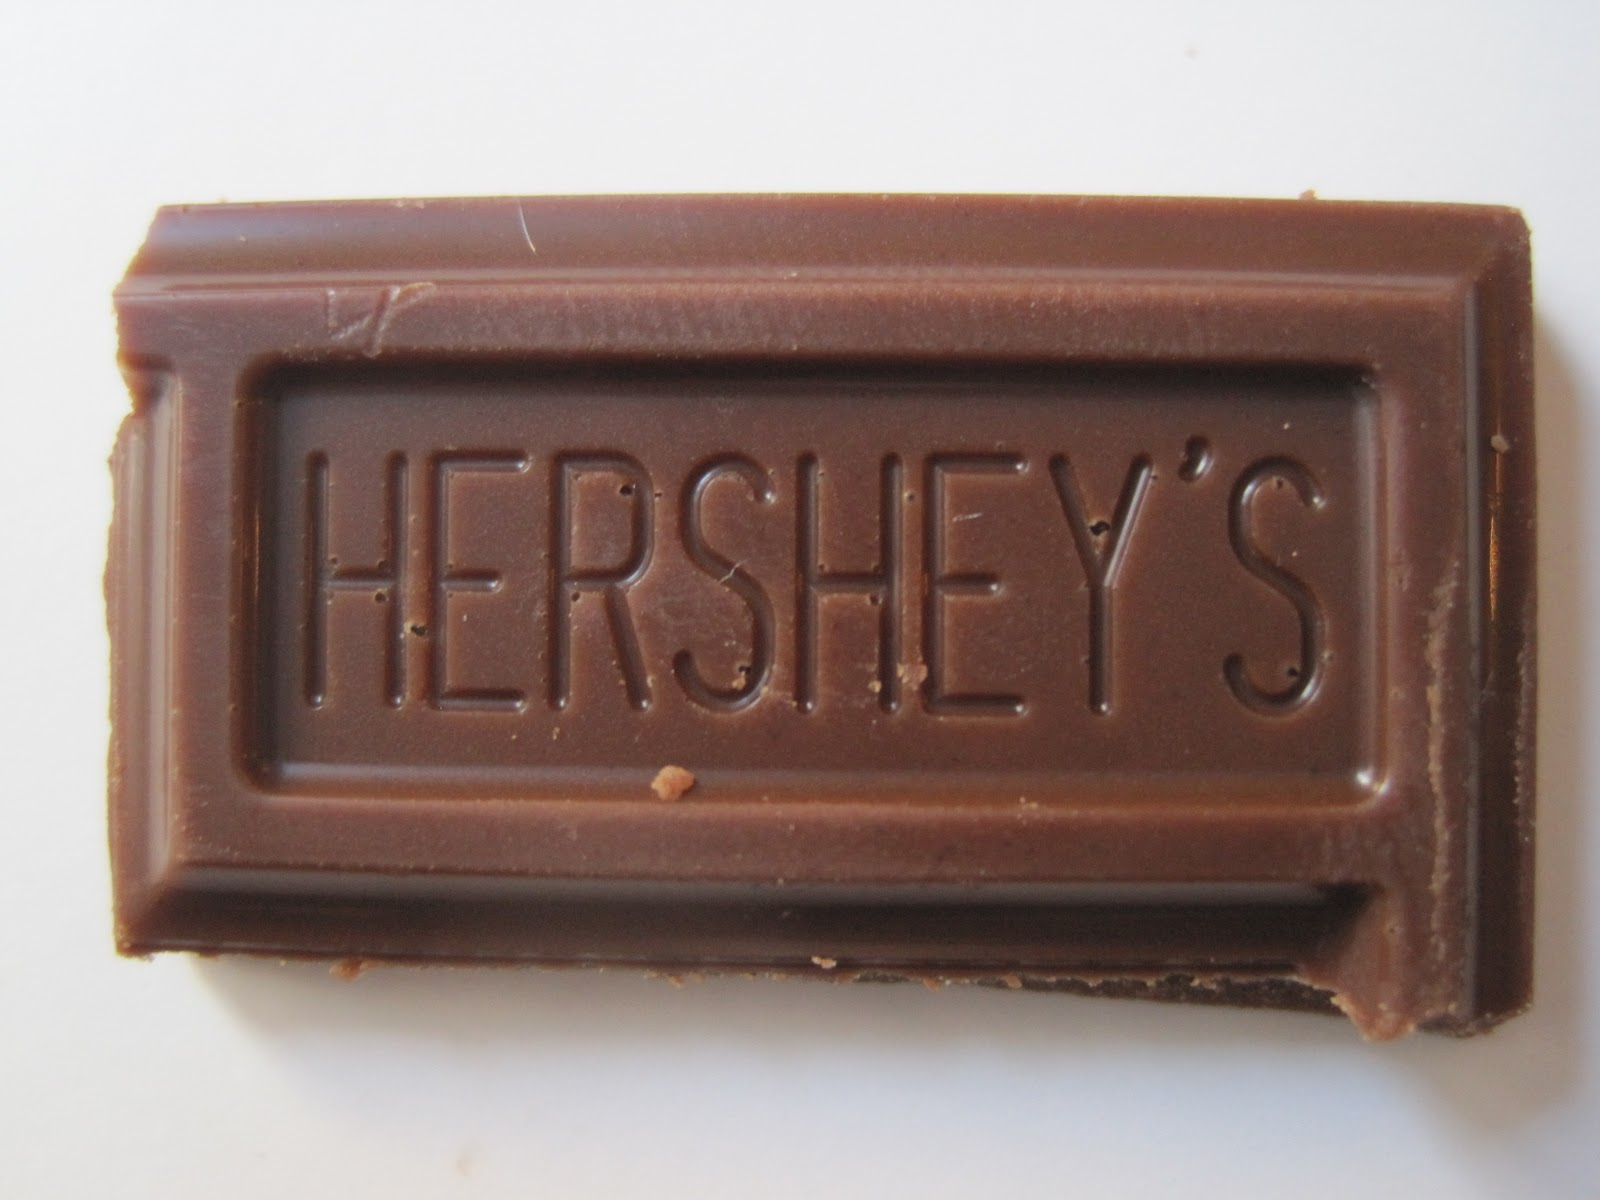 Walking The Candy Aisle: Hershey's Milk Chocolate review